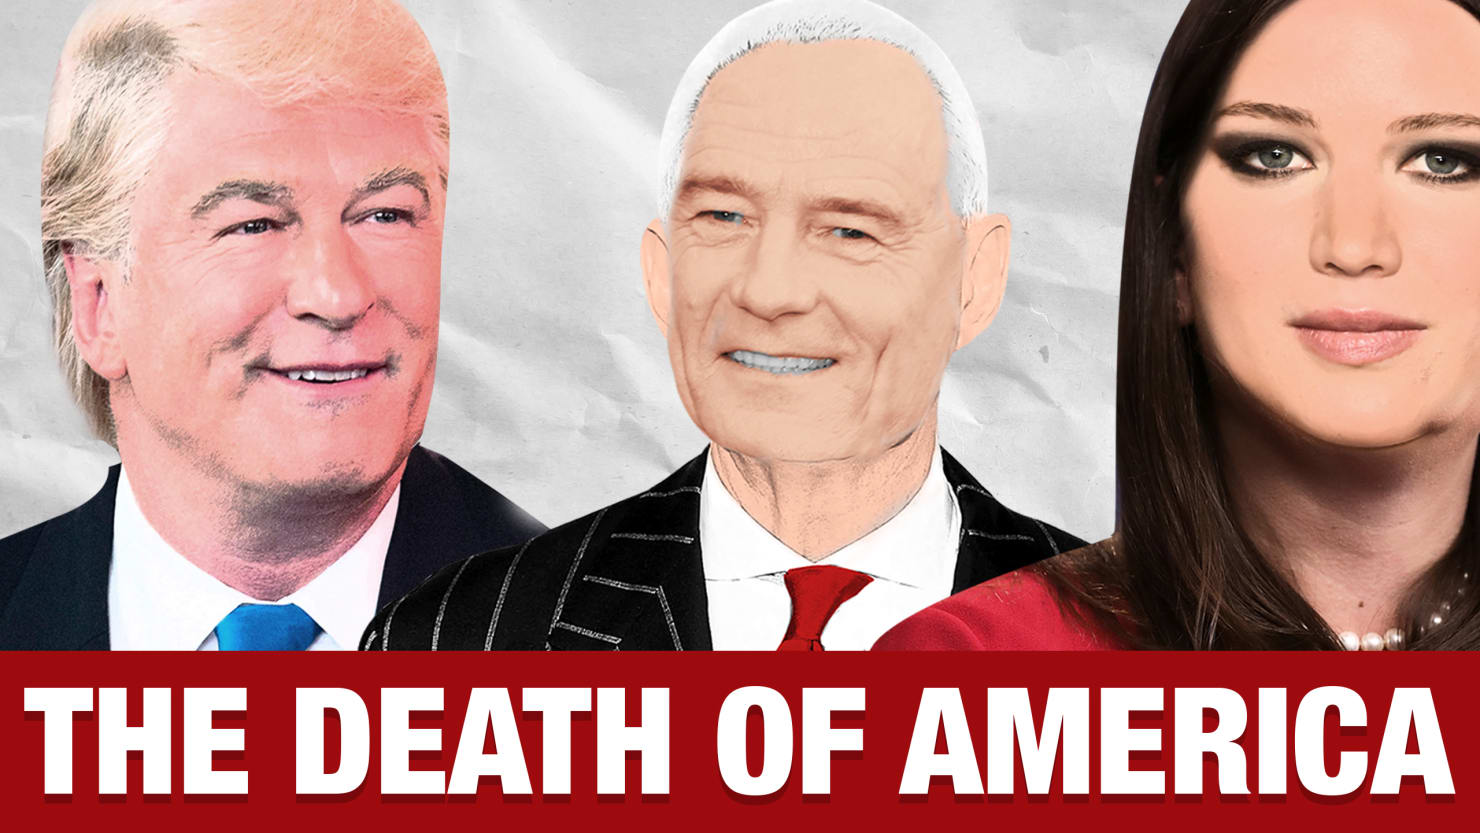 Bryan Cranston as Roger Stone? J. Law as Sarah Huckabee Sanders? You Can Almost See the Trump Film.